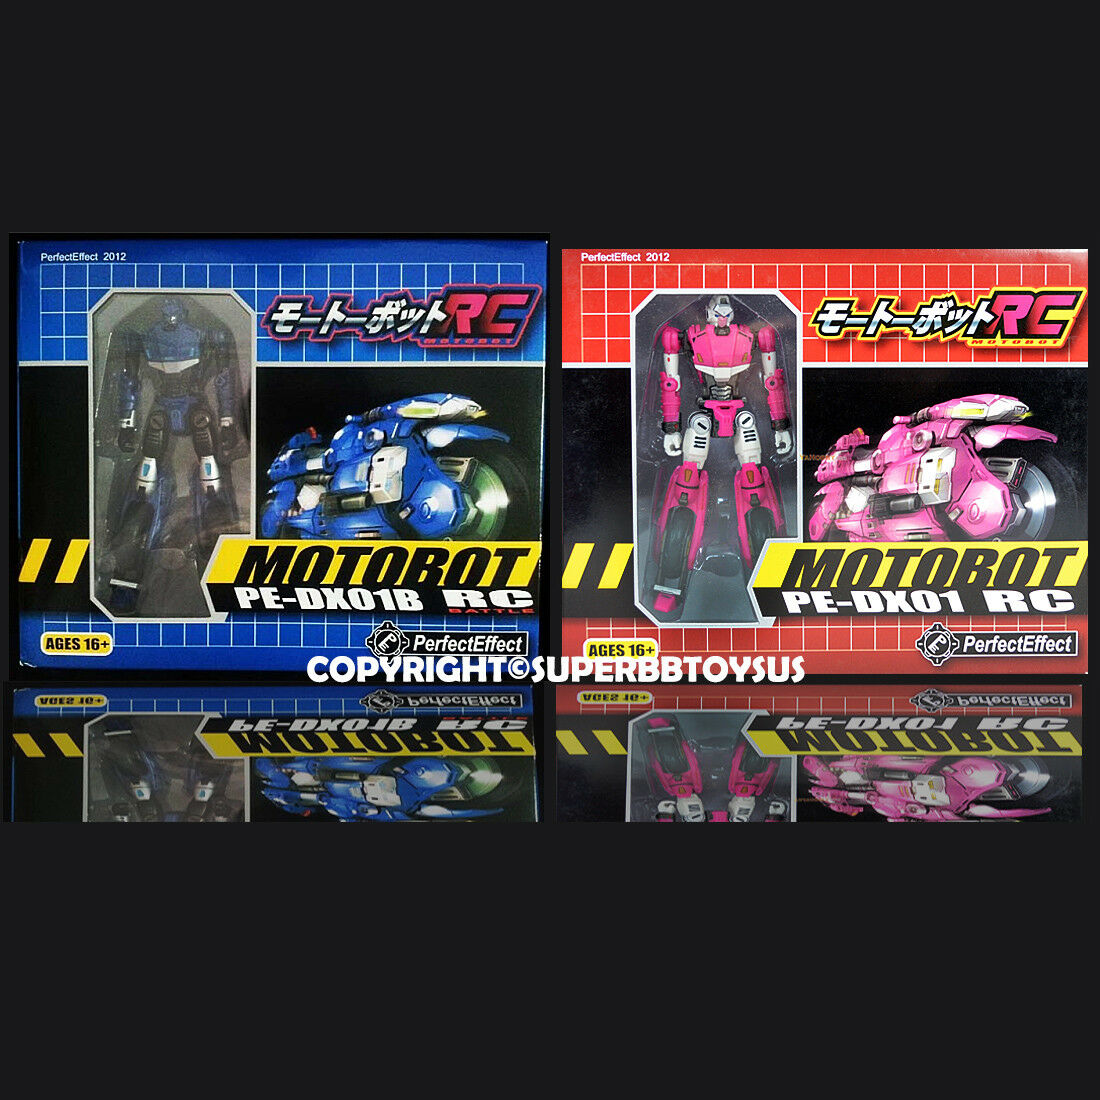 Transformers G1 Perfect Effect PE-DX01 RC Motorcycle Pink & bluee Version NEW